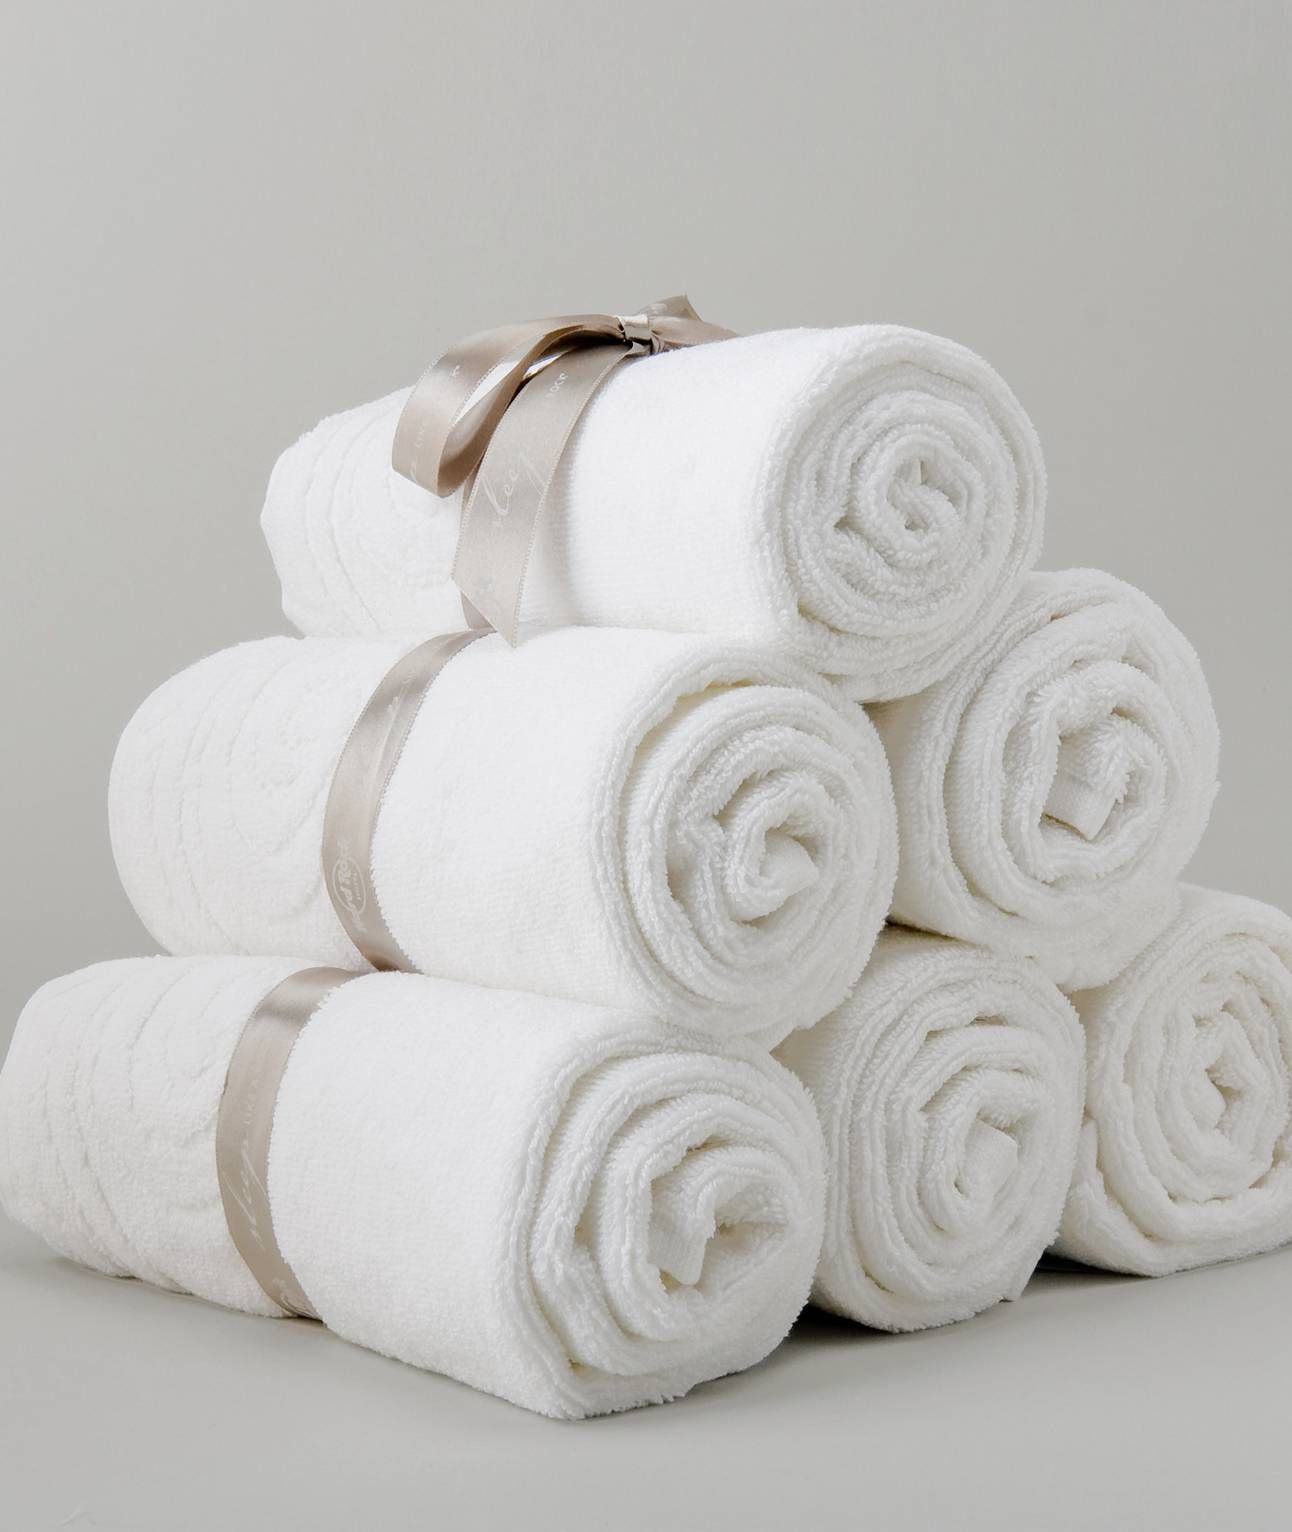 We Offer A Bulk Quantity Of Bath Towels In Wholesale Price With